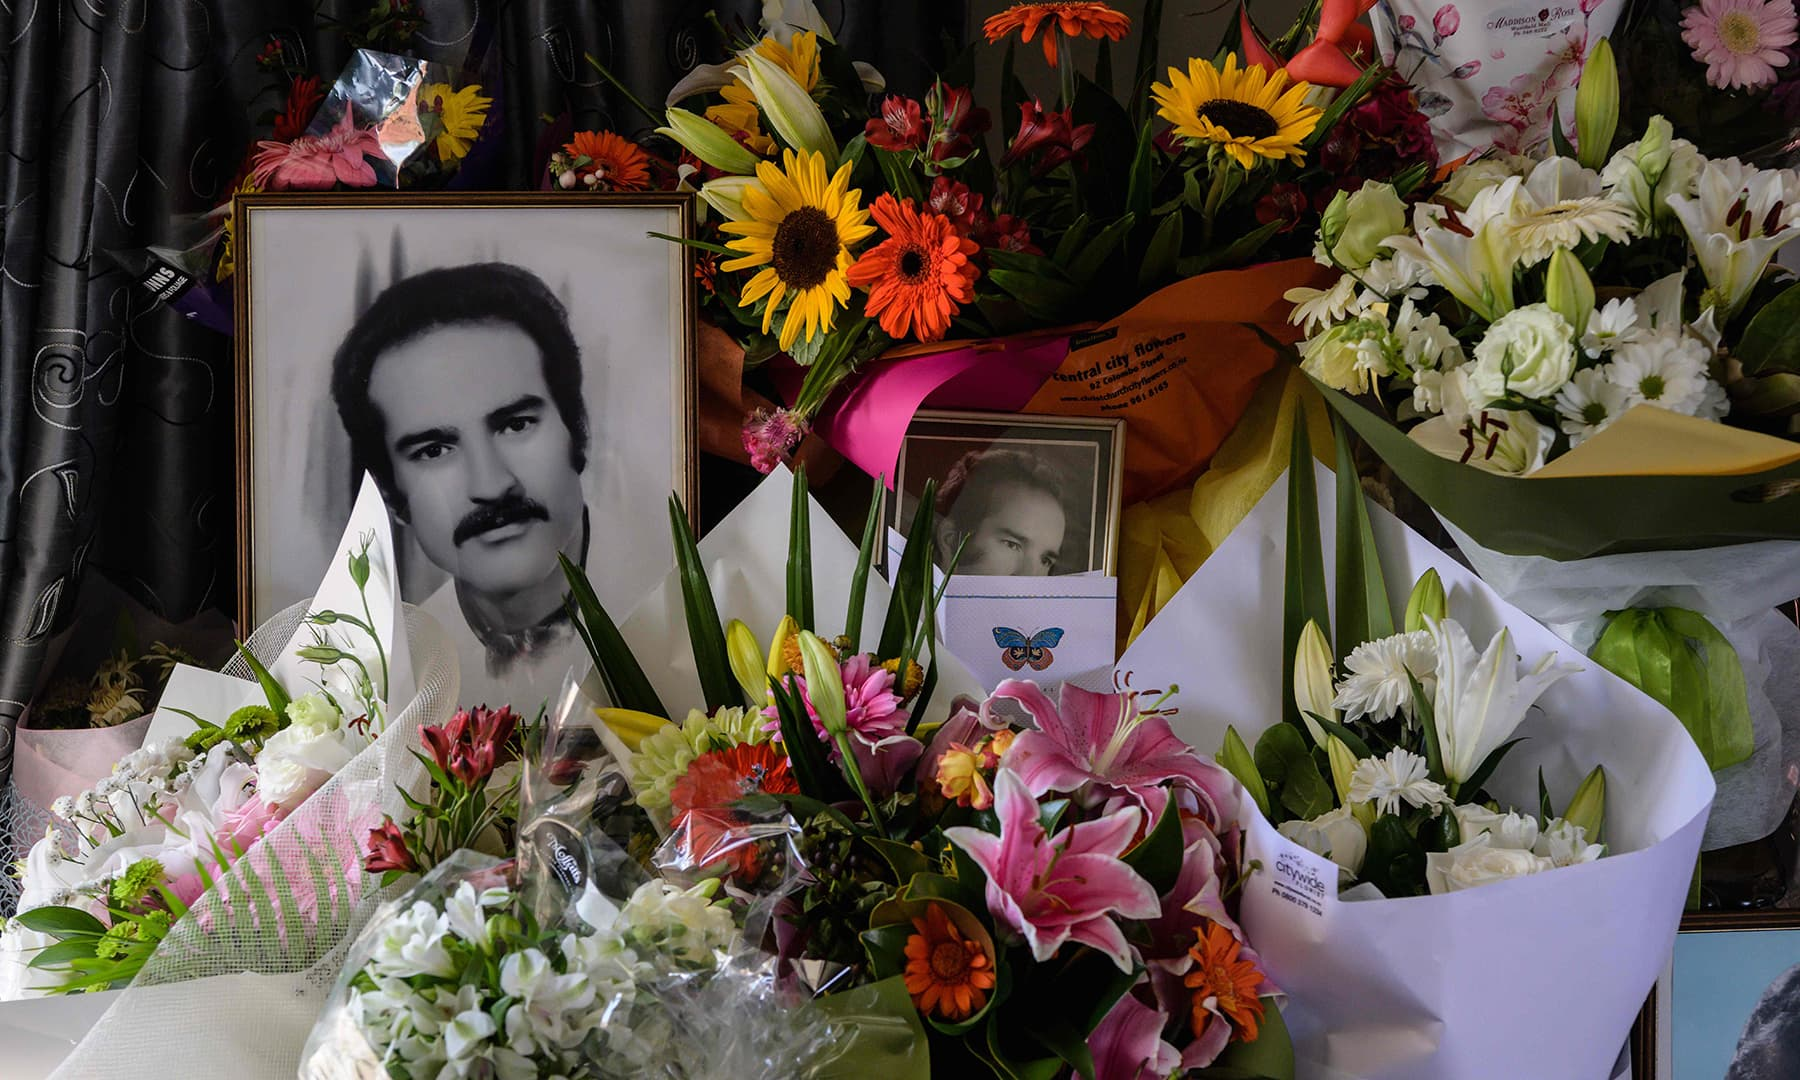 Flowers are placed around portraits at the home of Haji Mohammed Daoud Nabi, 71, in Chirstchurch. — AFP